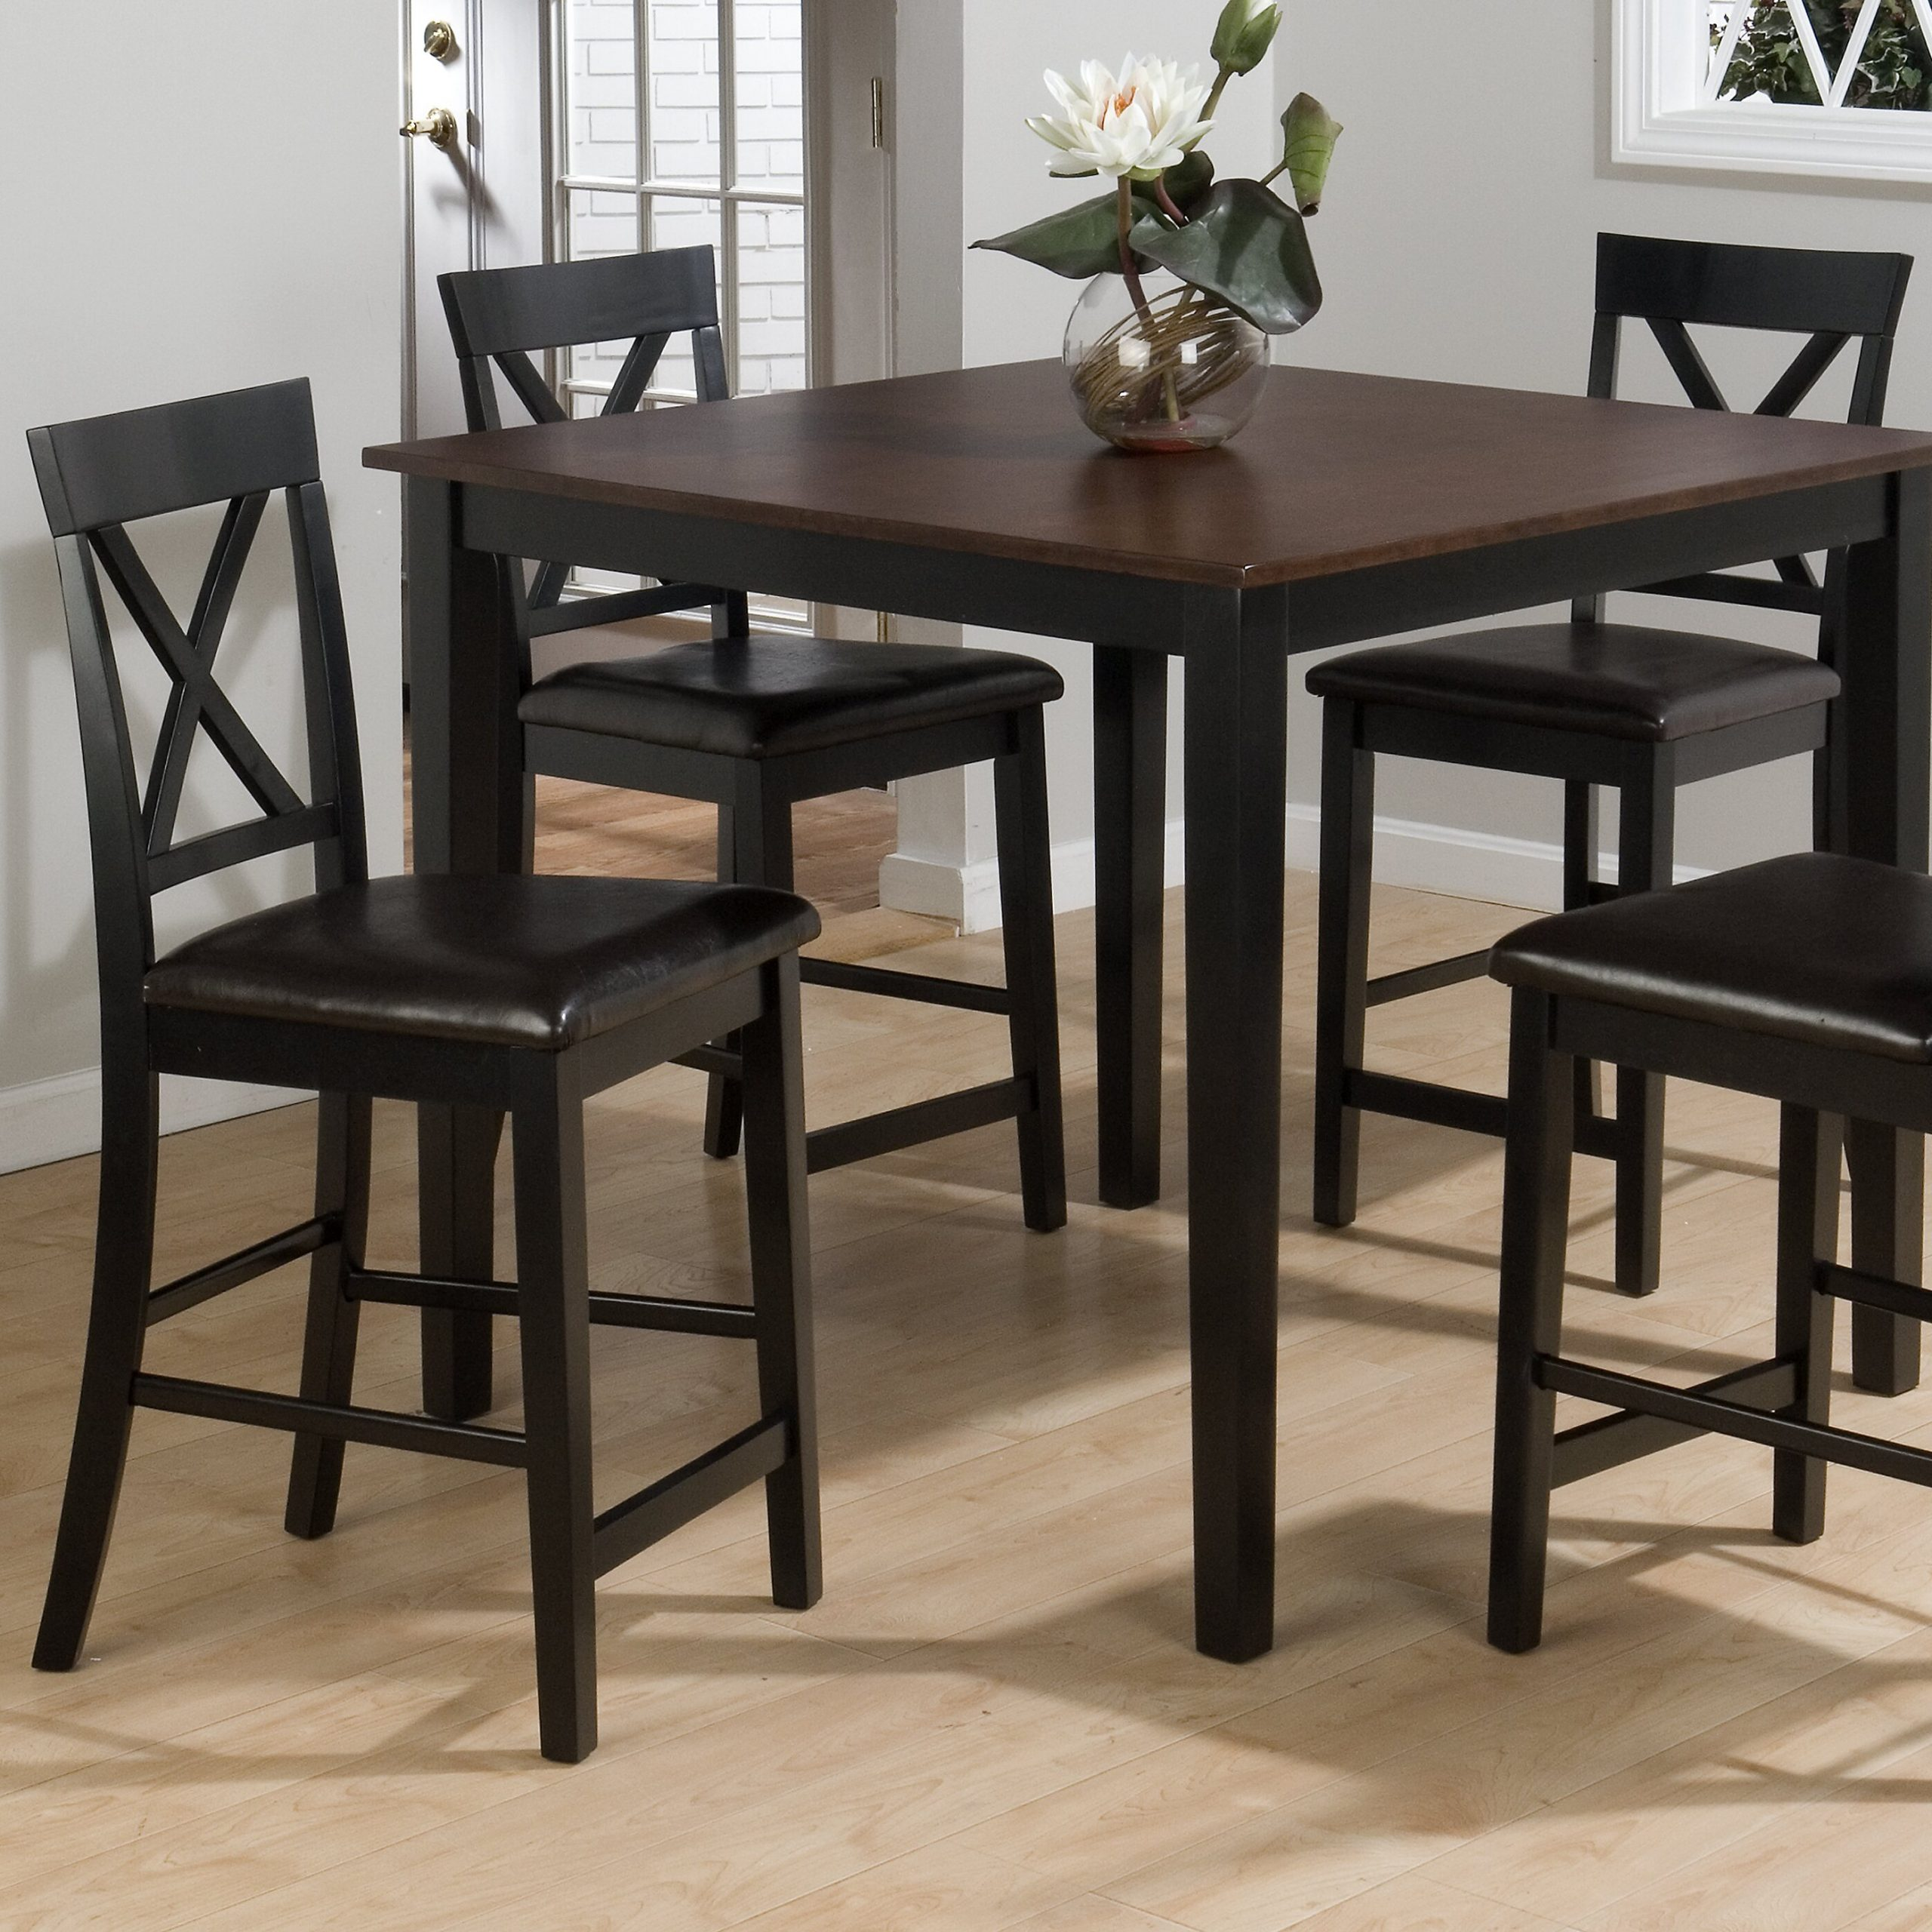 Jofran Burly 5 Piece Counter Height Dining Table Set Within Most Recent Shoaib Counter Height Dining Tables (Photo 5 of 15)